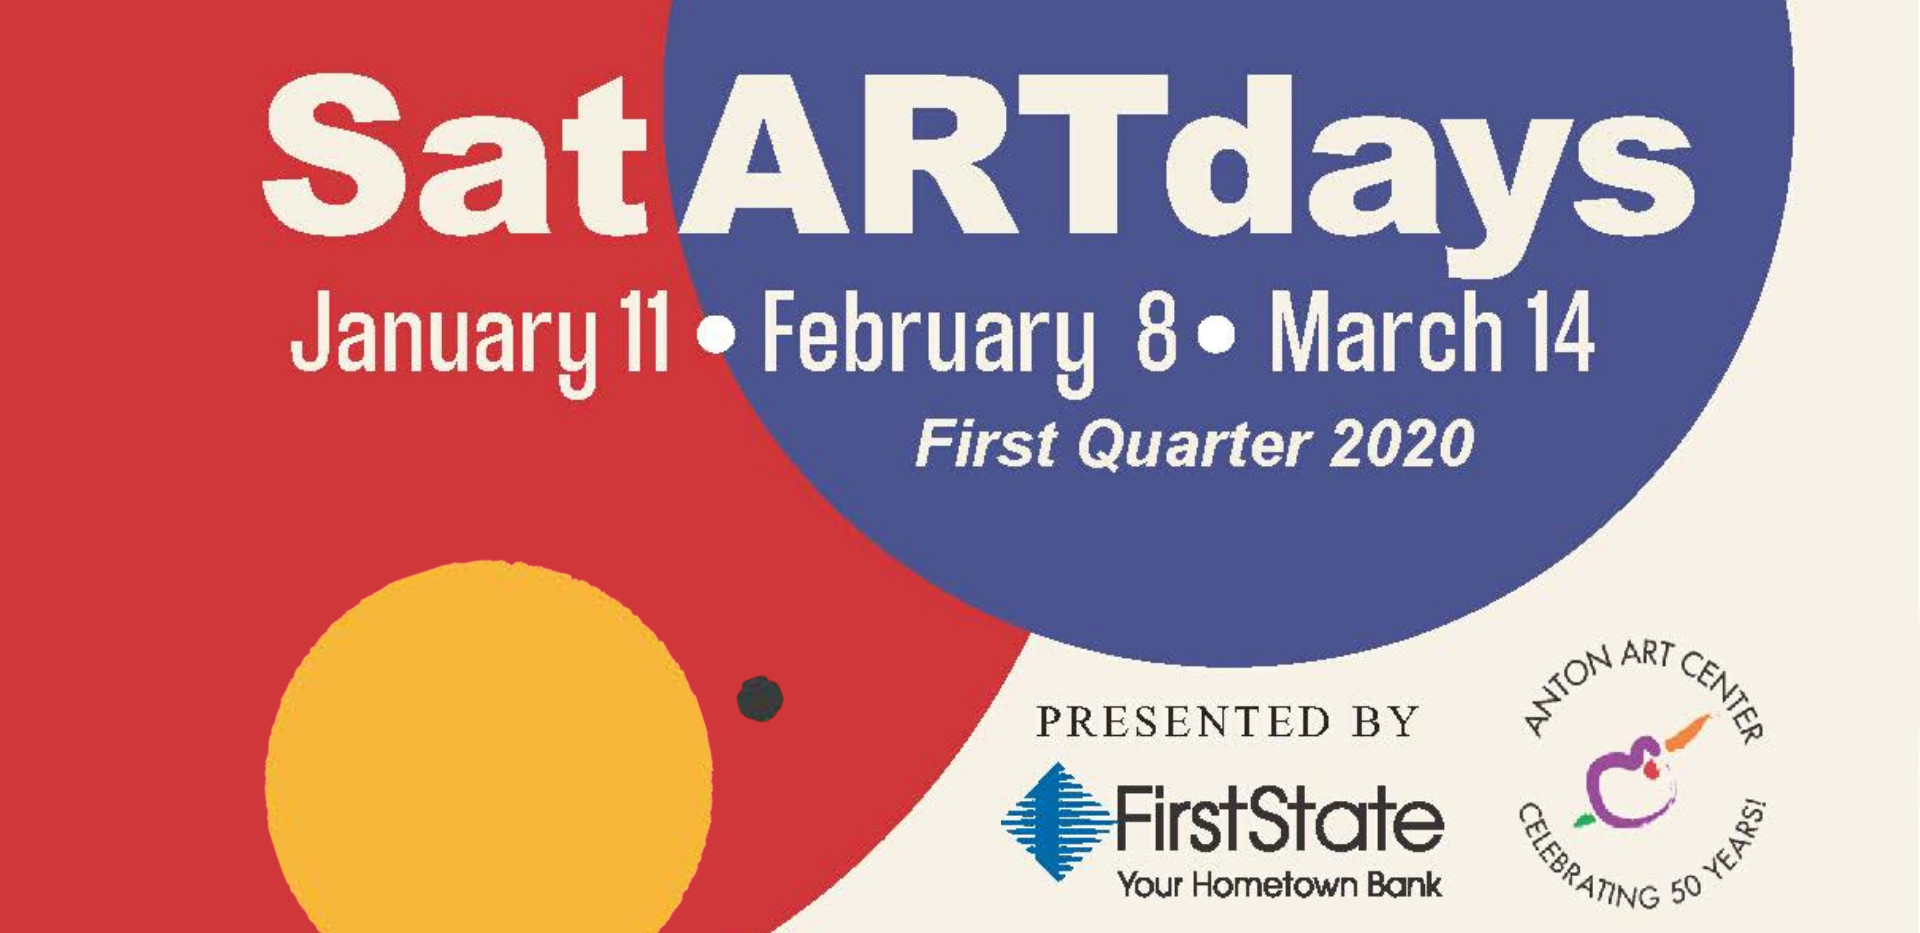 SatARTdays 1Q fb event cover.jpg